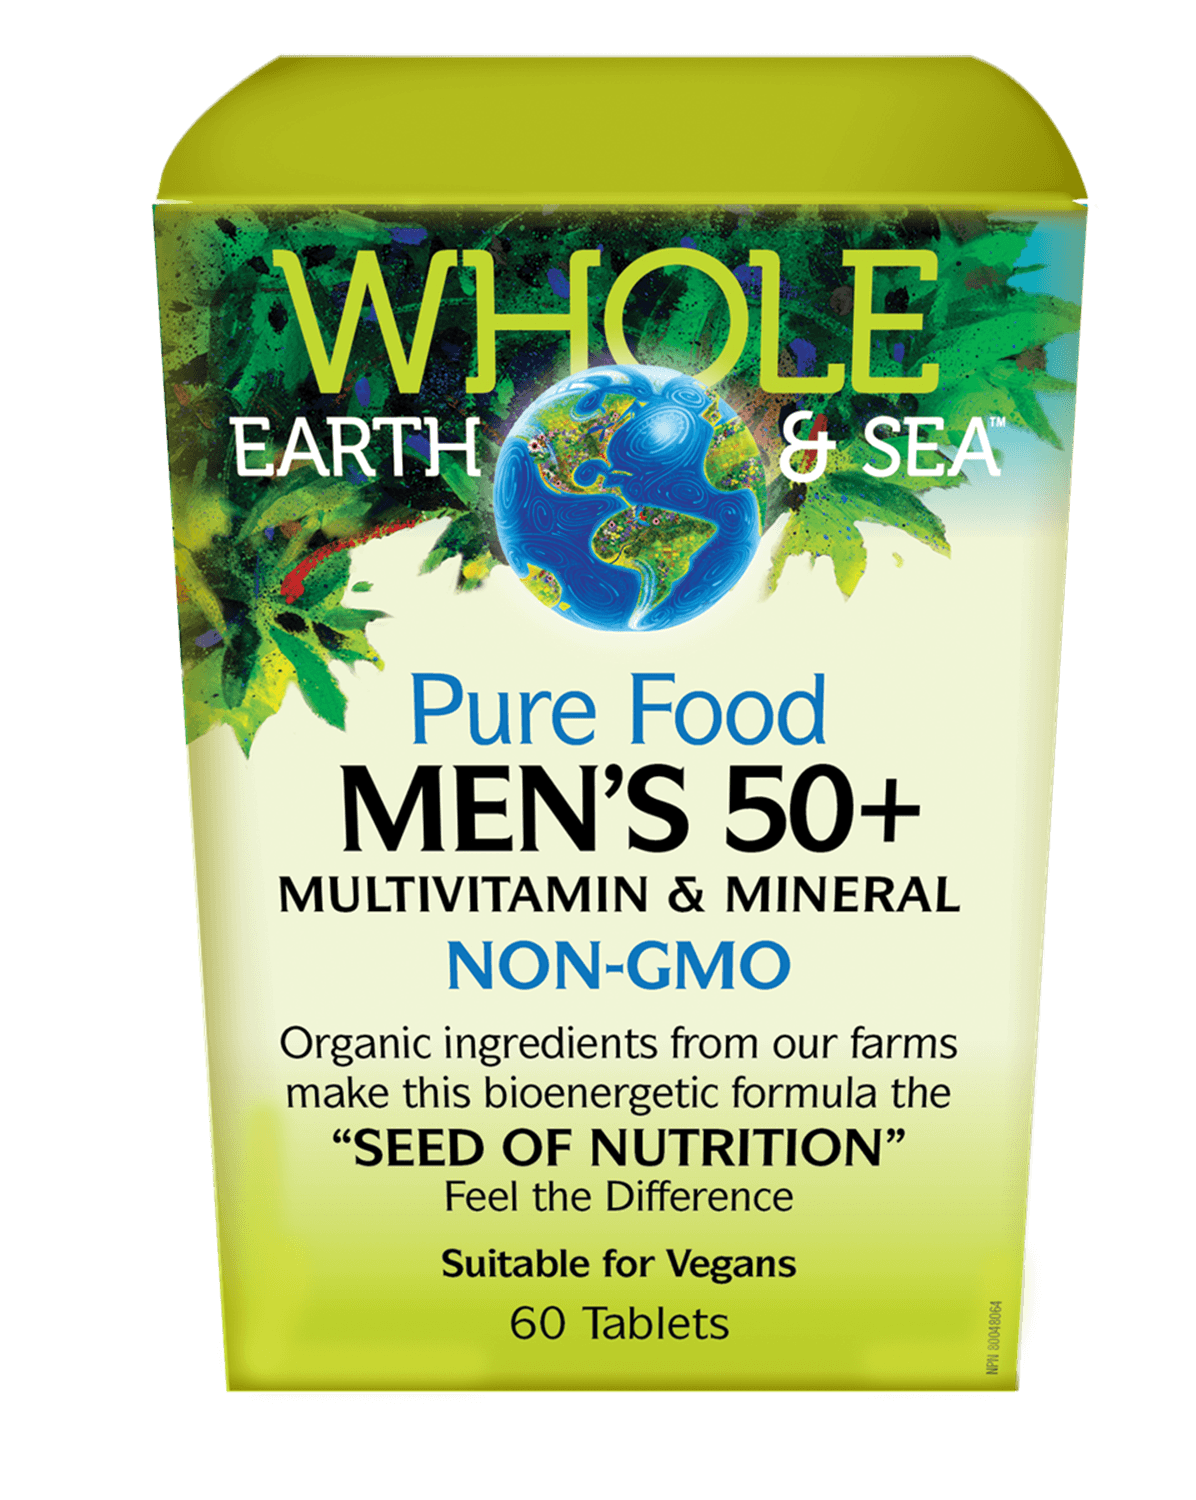 Supplements & Vitamins - Whole Earth & Sea - Men's 50+ Multivitamin & Mineral, 60 Tabs